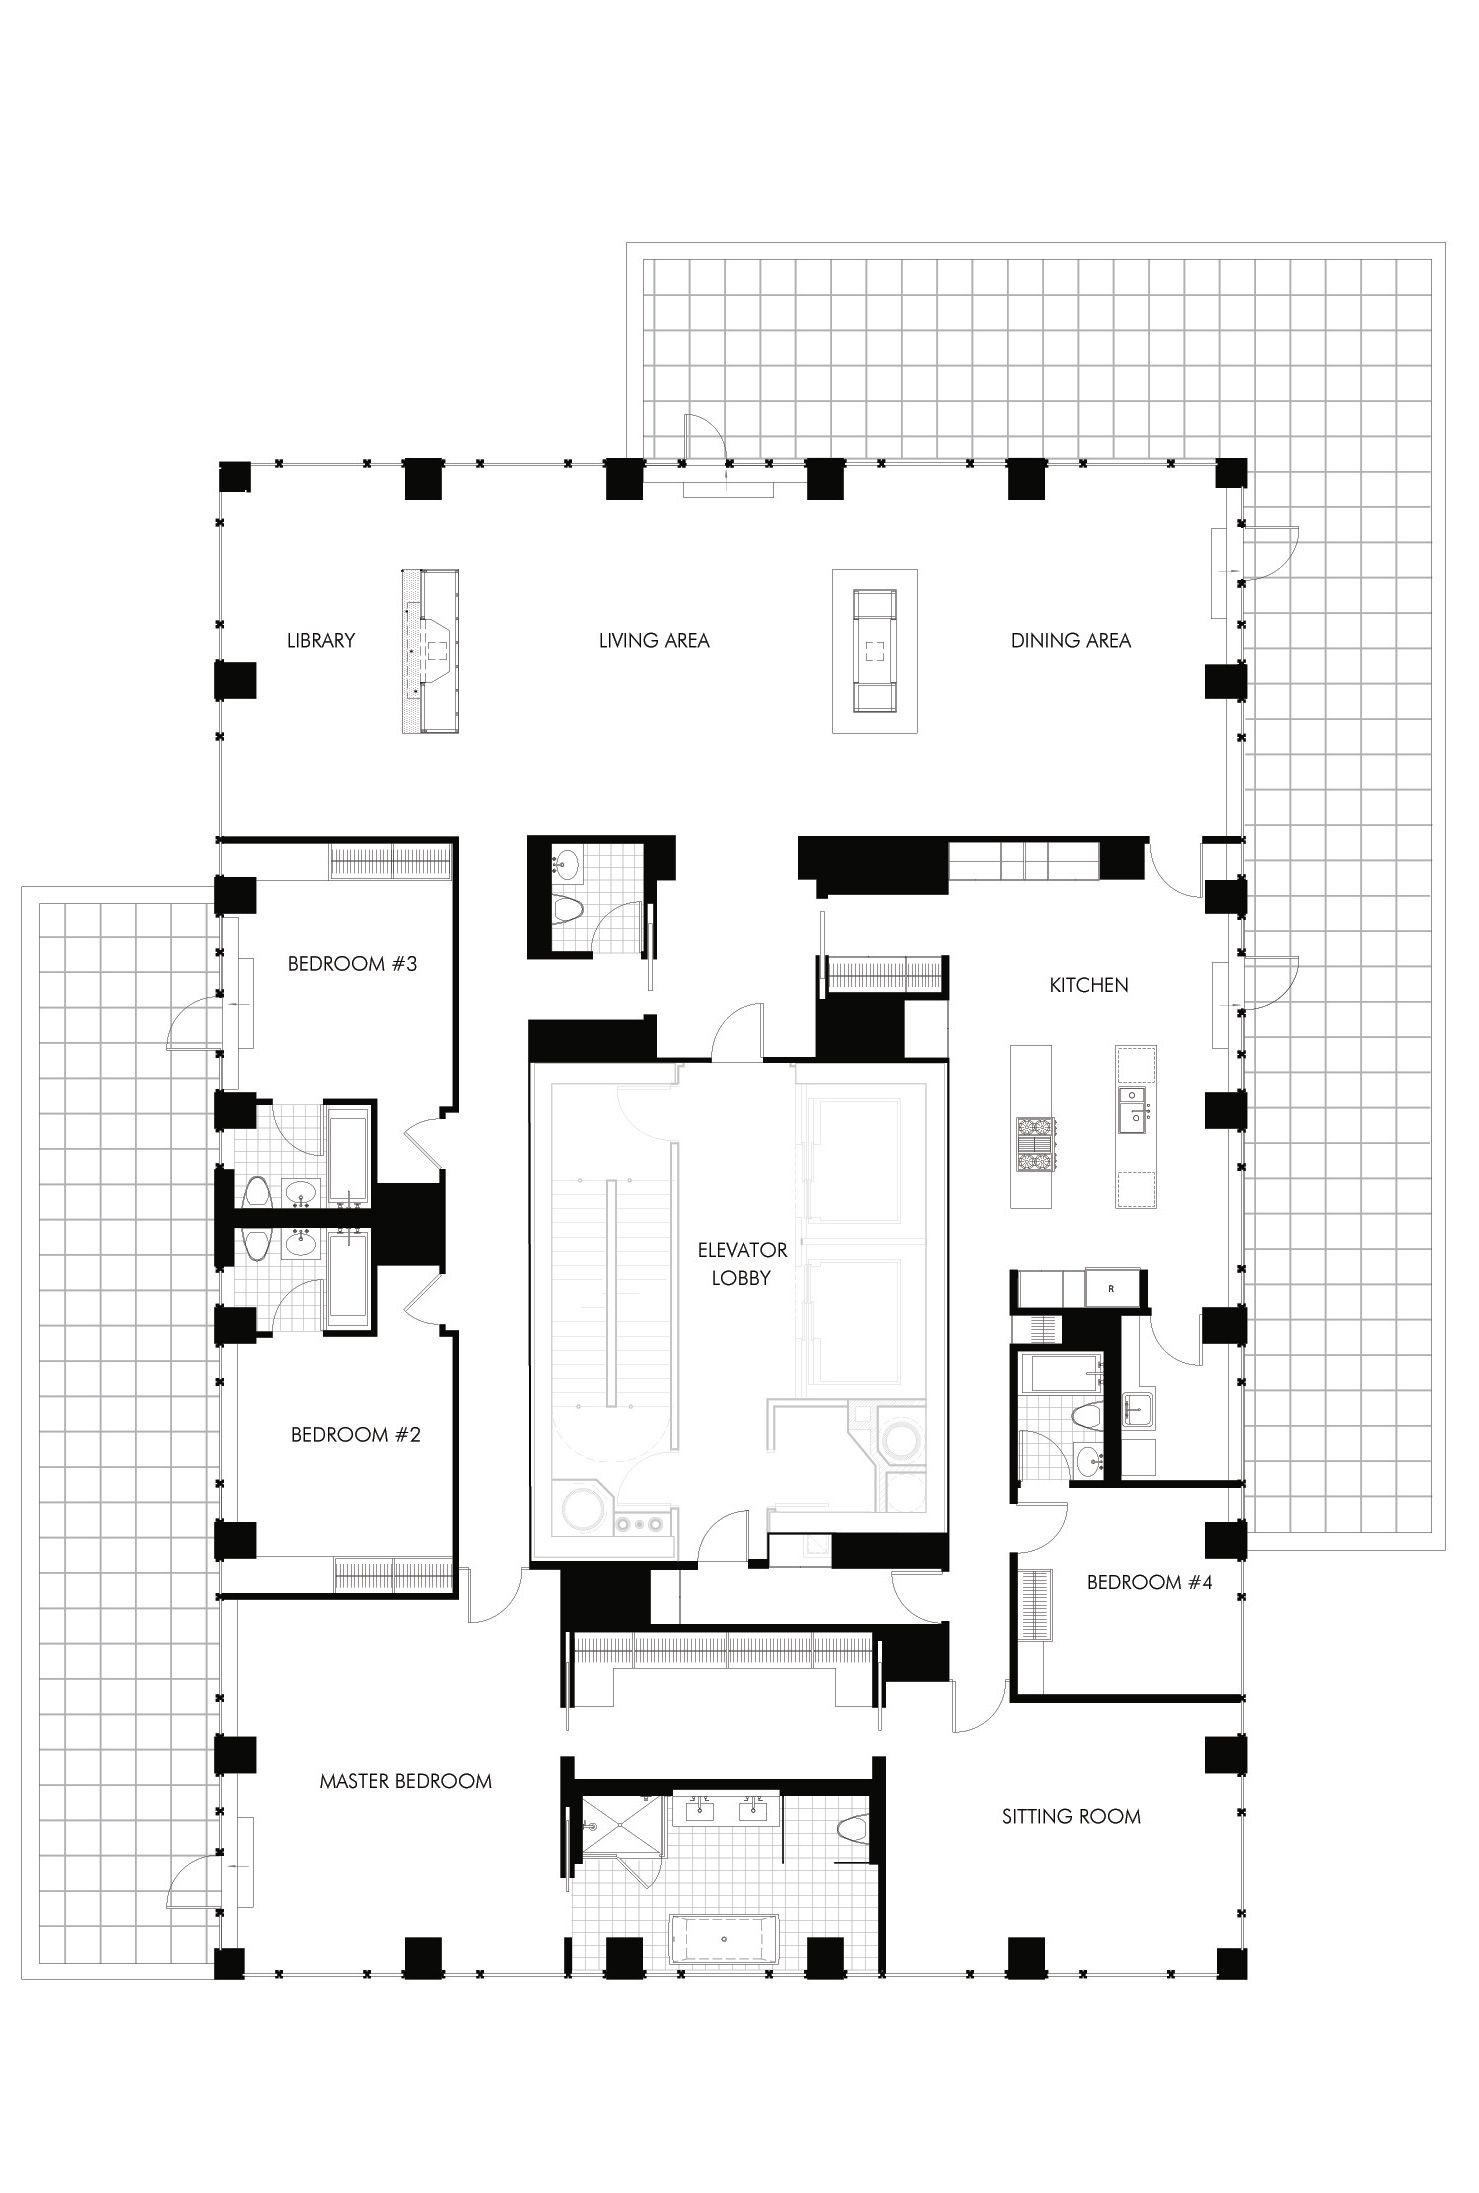 selldorf architects the urban glass house floor plans. Black Bedroom Furniture Sets. Home Design Ideas